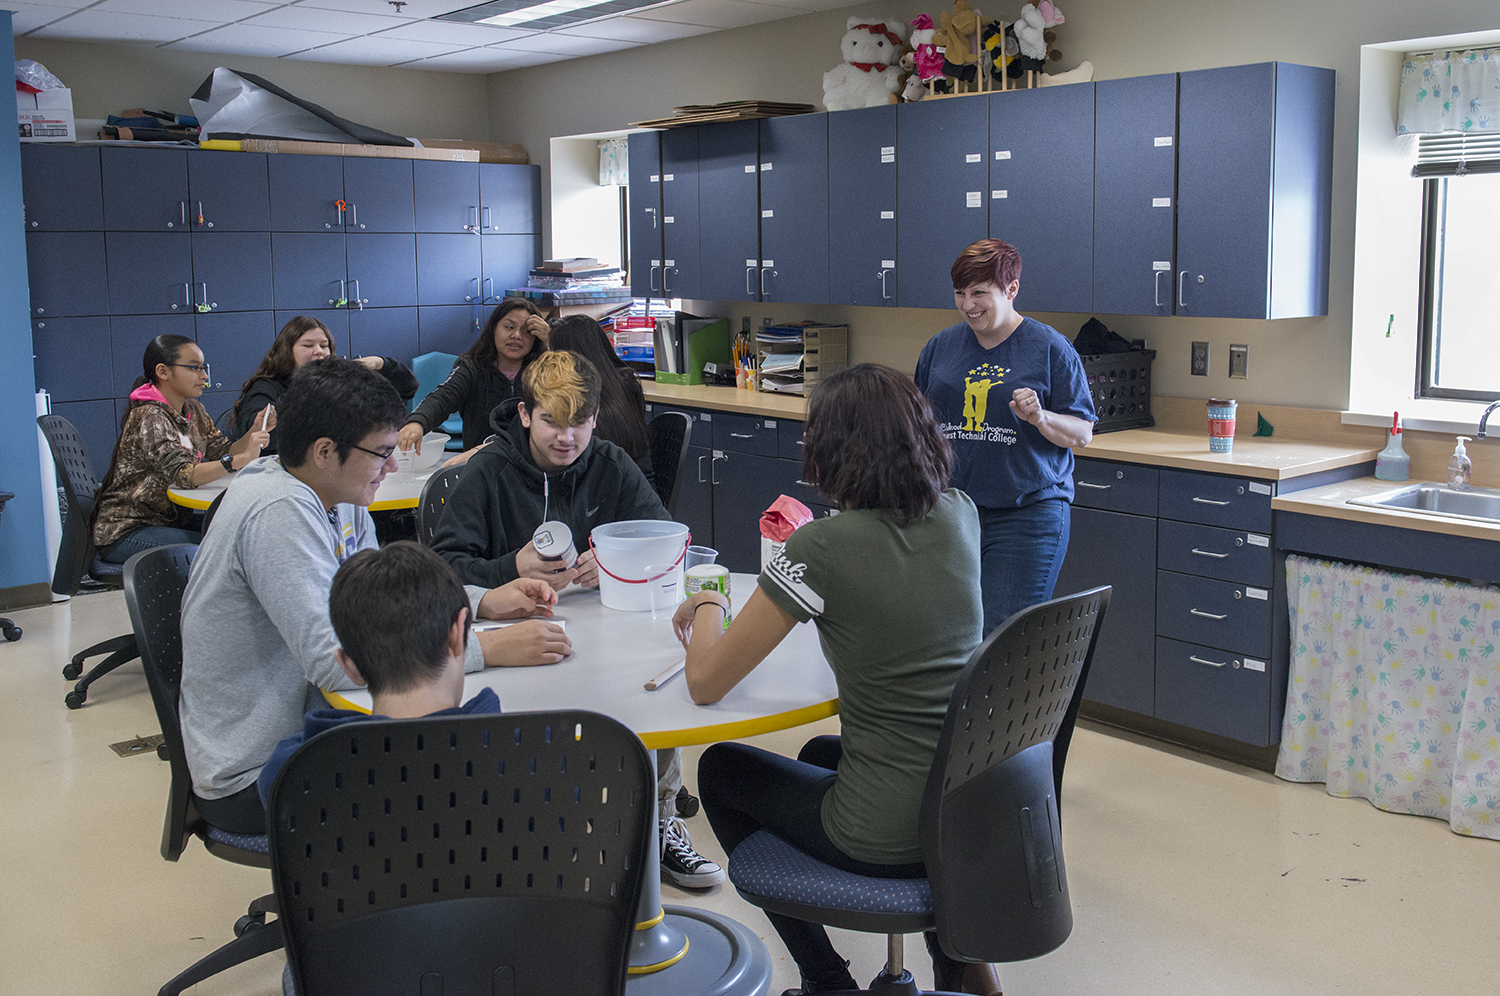 Heather Sutherland, early childhood education faculty, working with high school students.